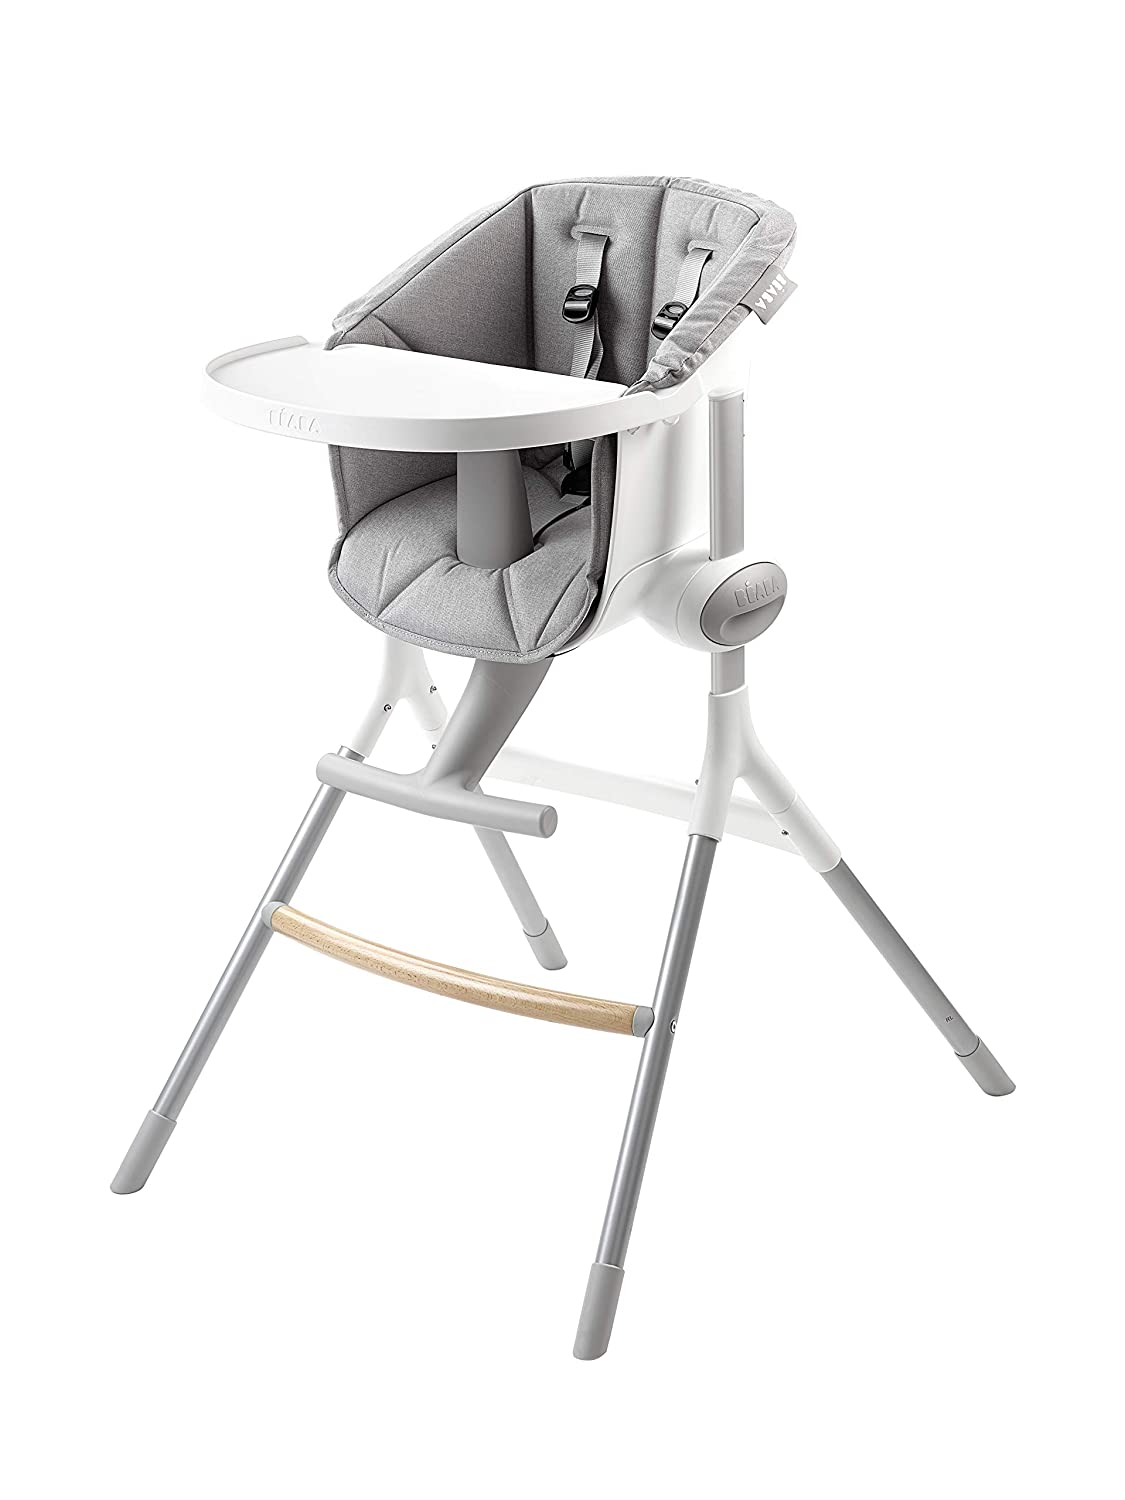 Beaba Padded Seat Cushion Insert for Up and Down Highchair